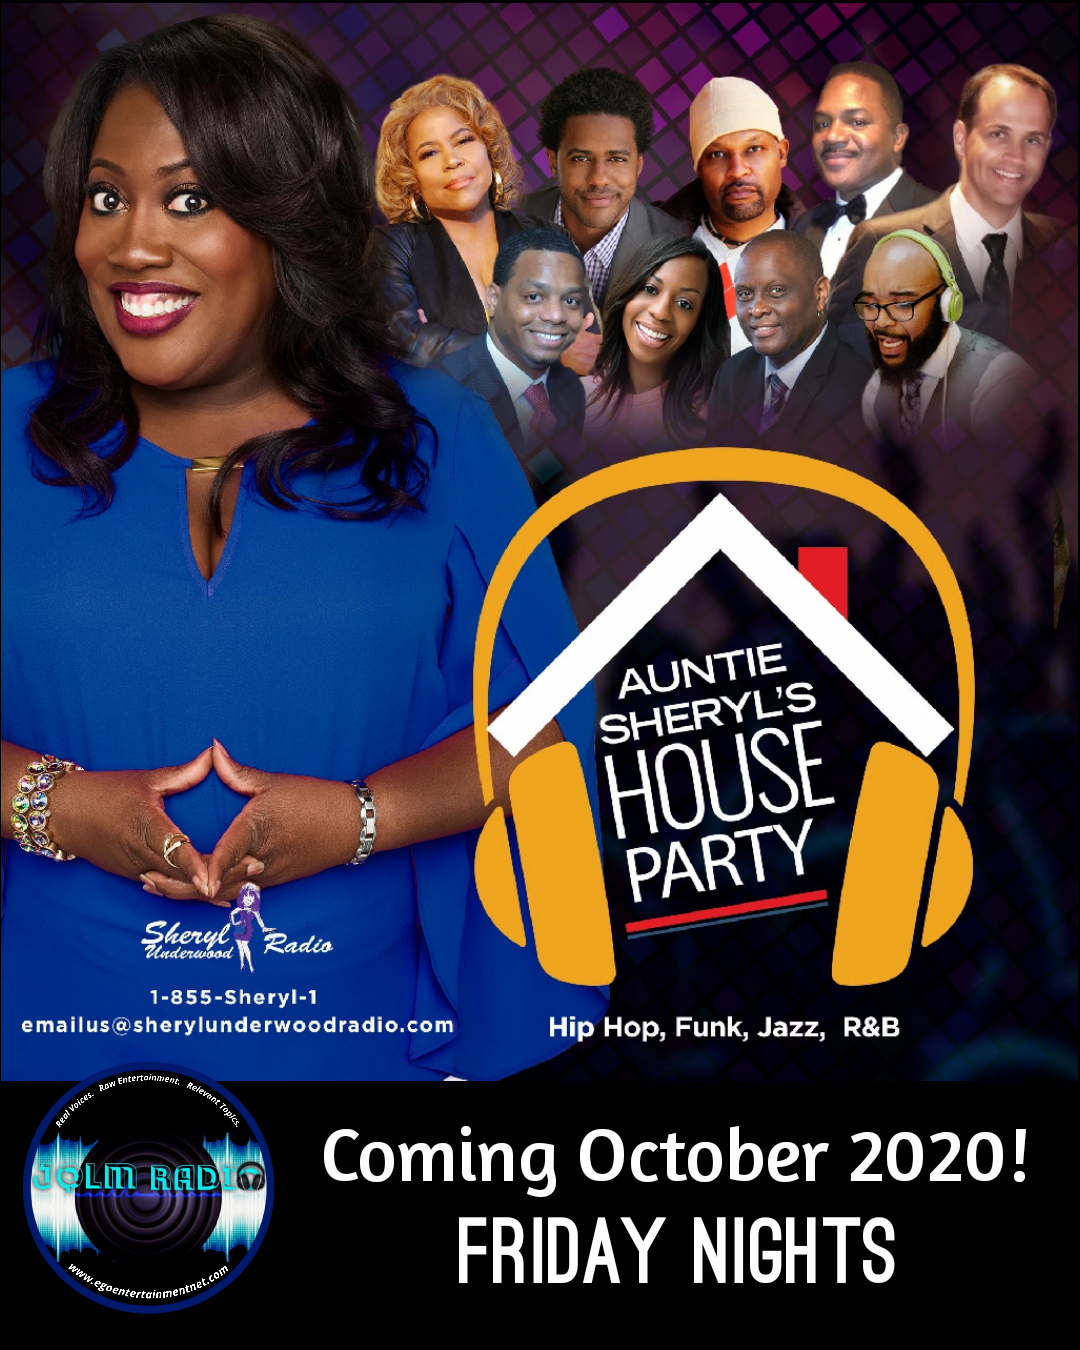 AUNTIE SHERYL'S HOUSE PARTY